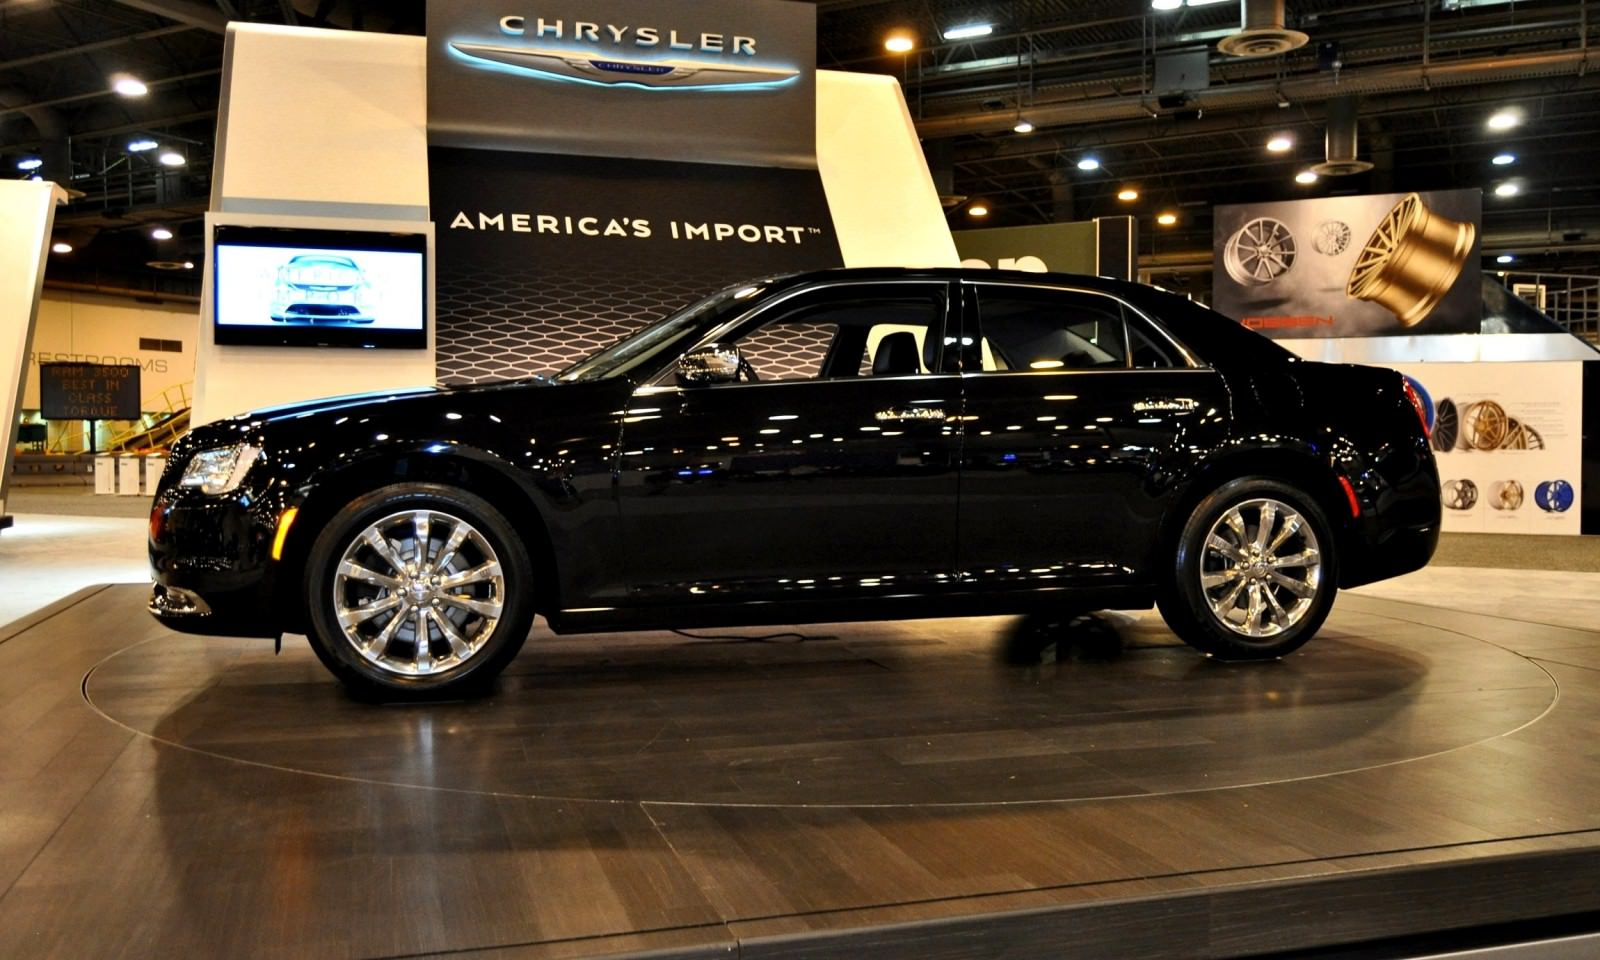 2015 Chrysler 300C - Houston Auto Show Gallery 19